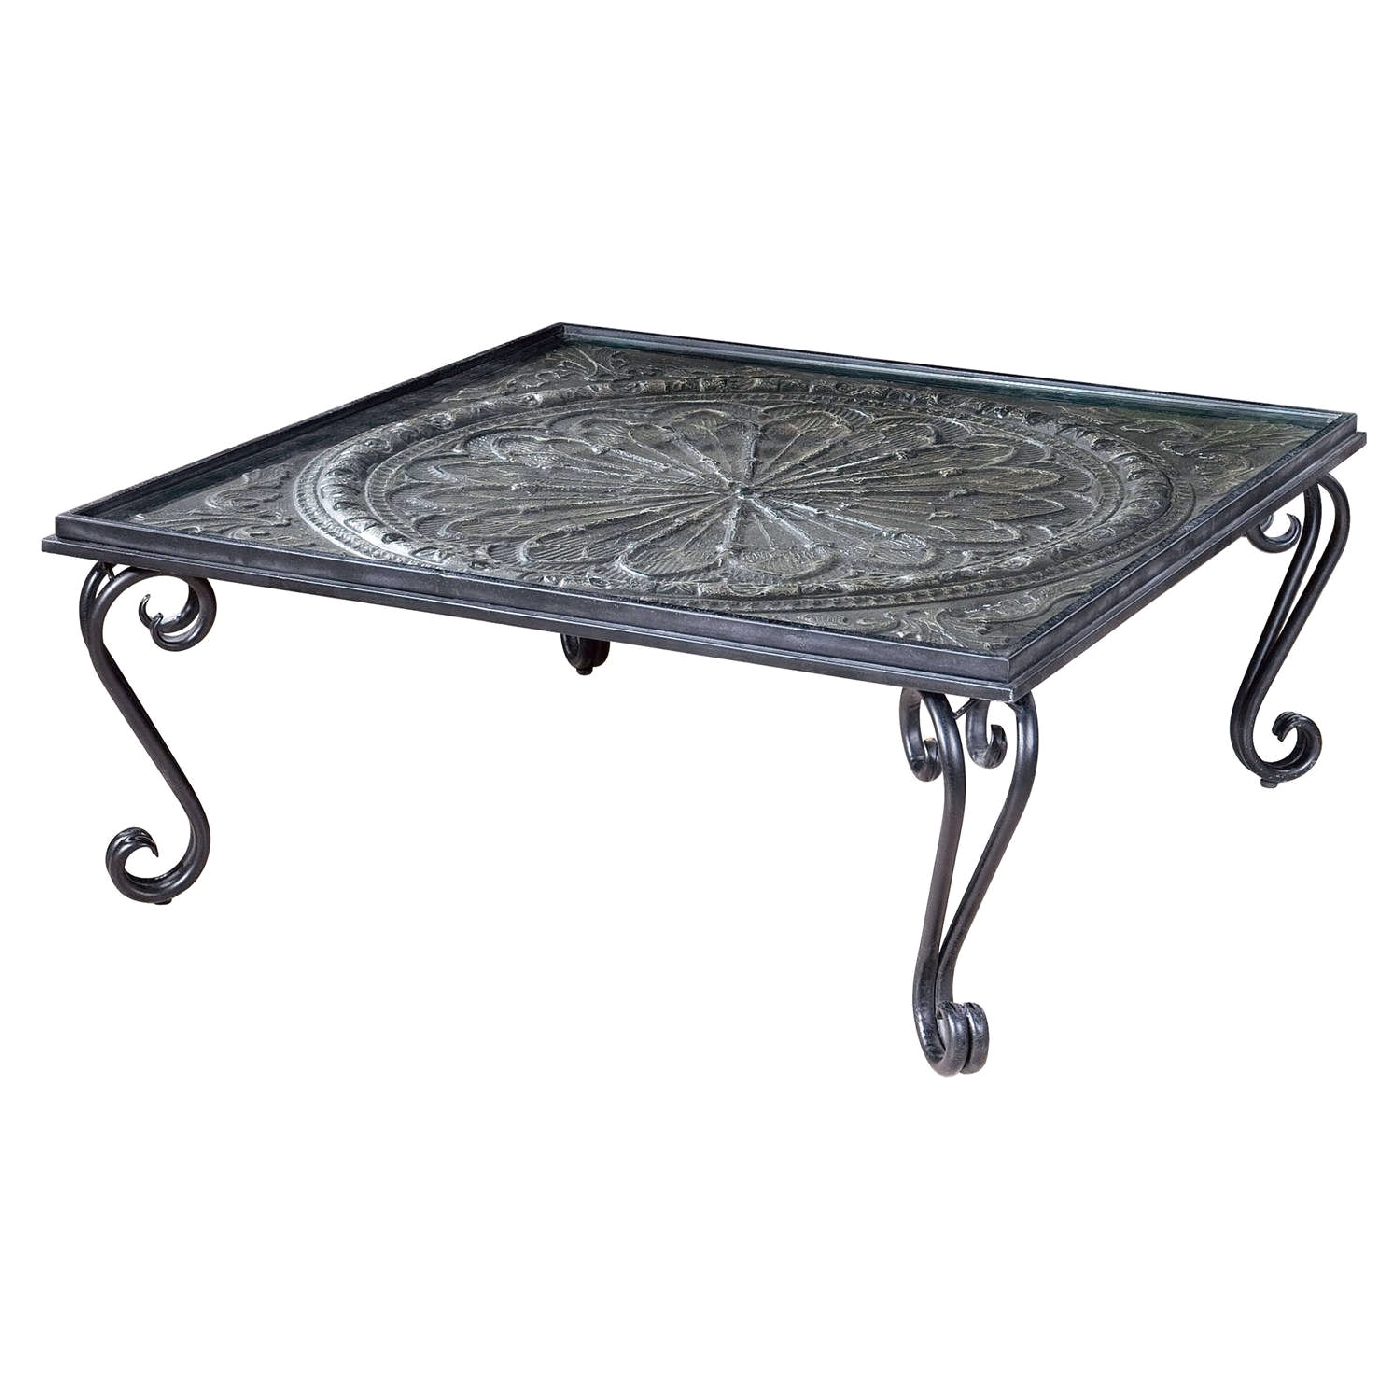 Ottavio Black And Silver Forged Iron Coffee Table With Tempered Glass Top